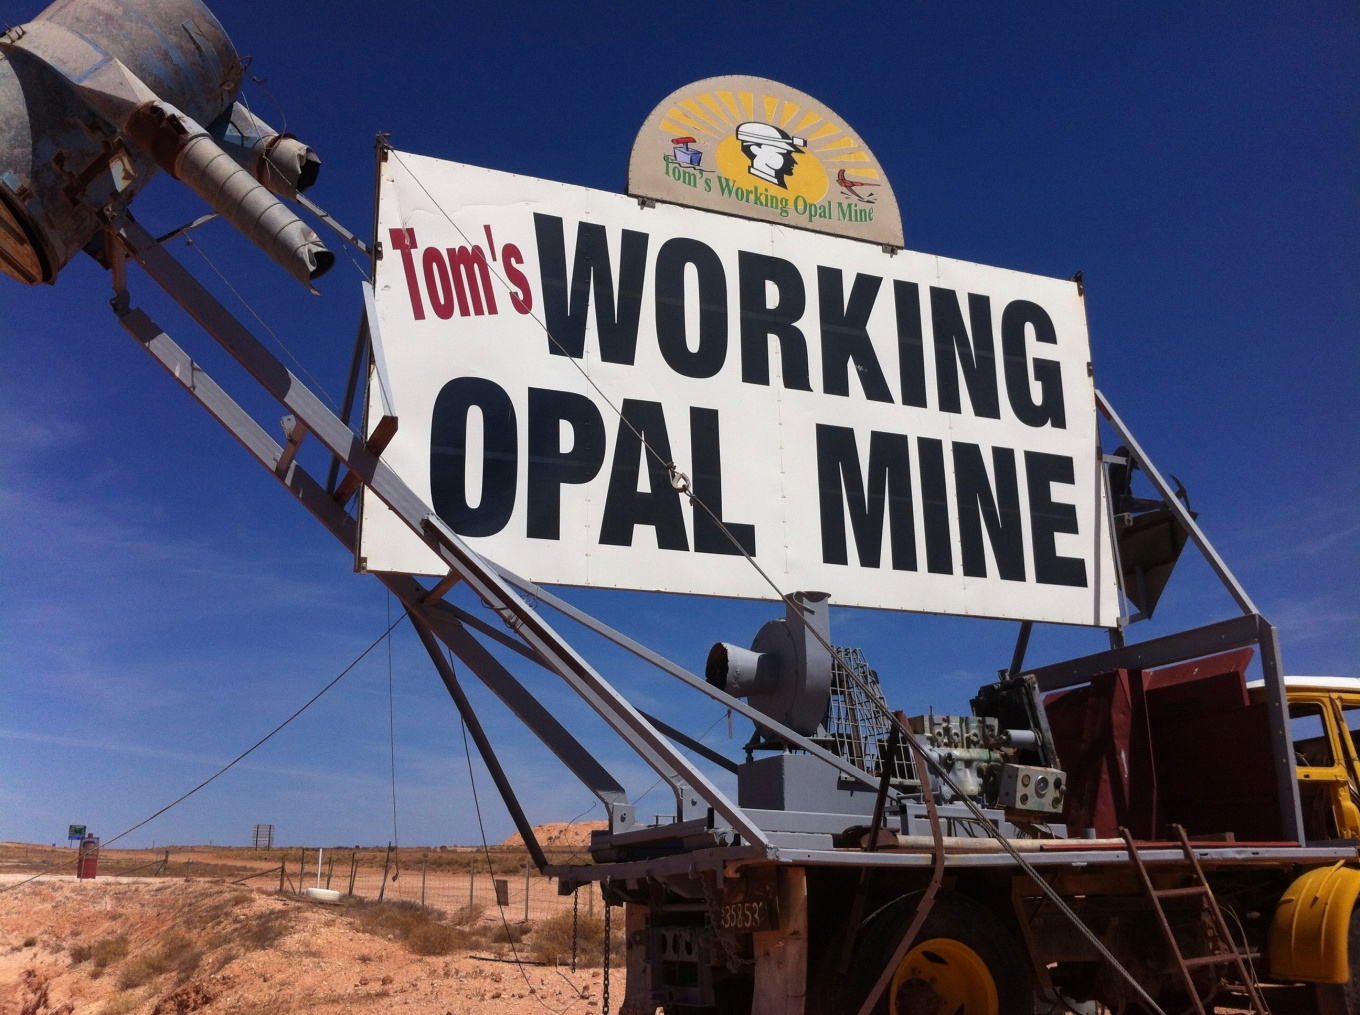 Tom's working opal mine